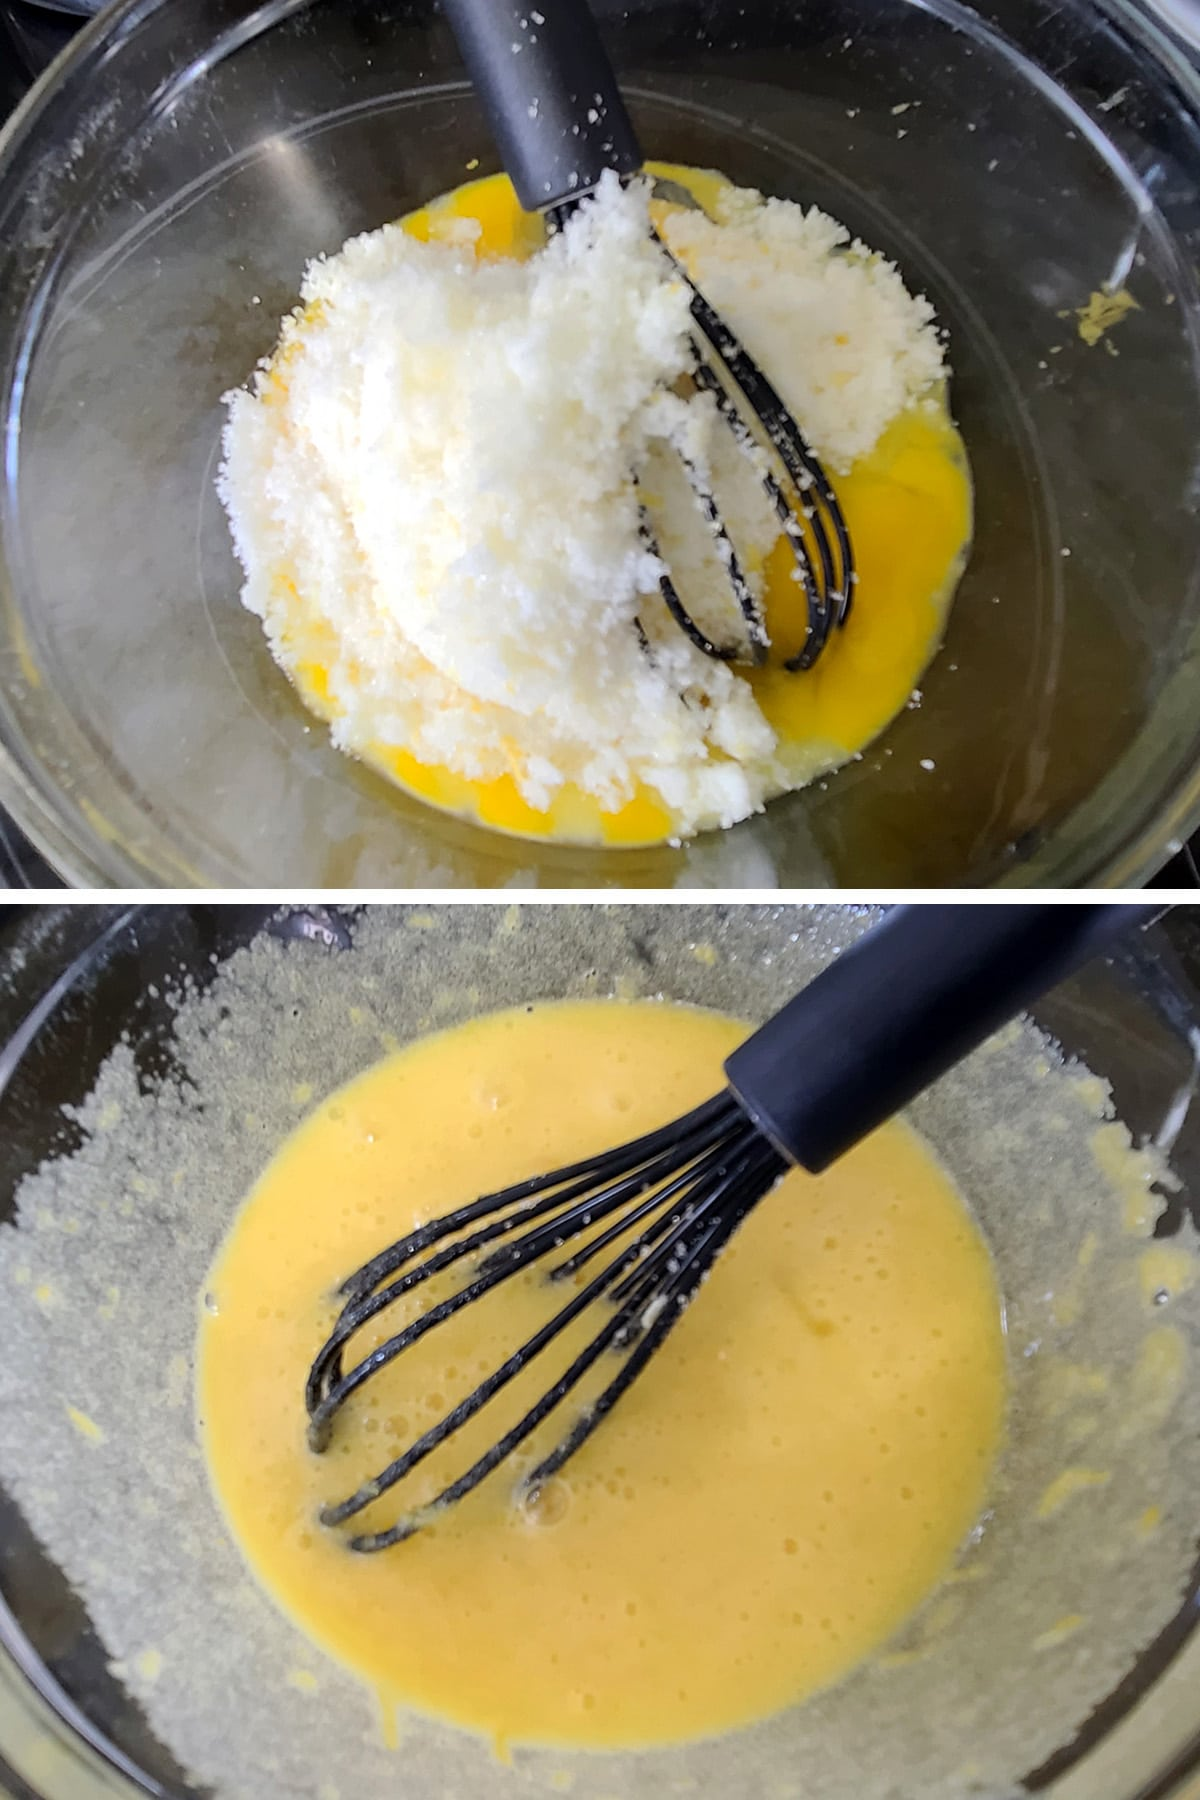 Sugar and egg being whisked together.